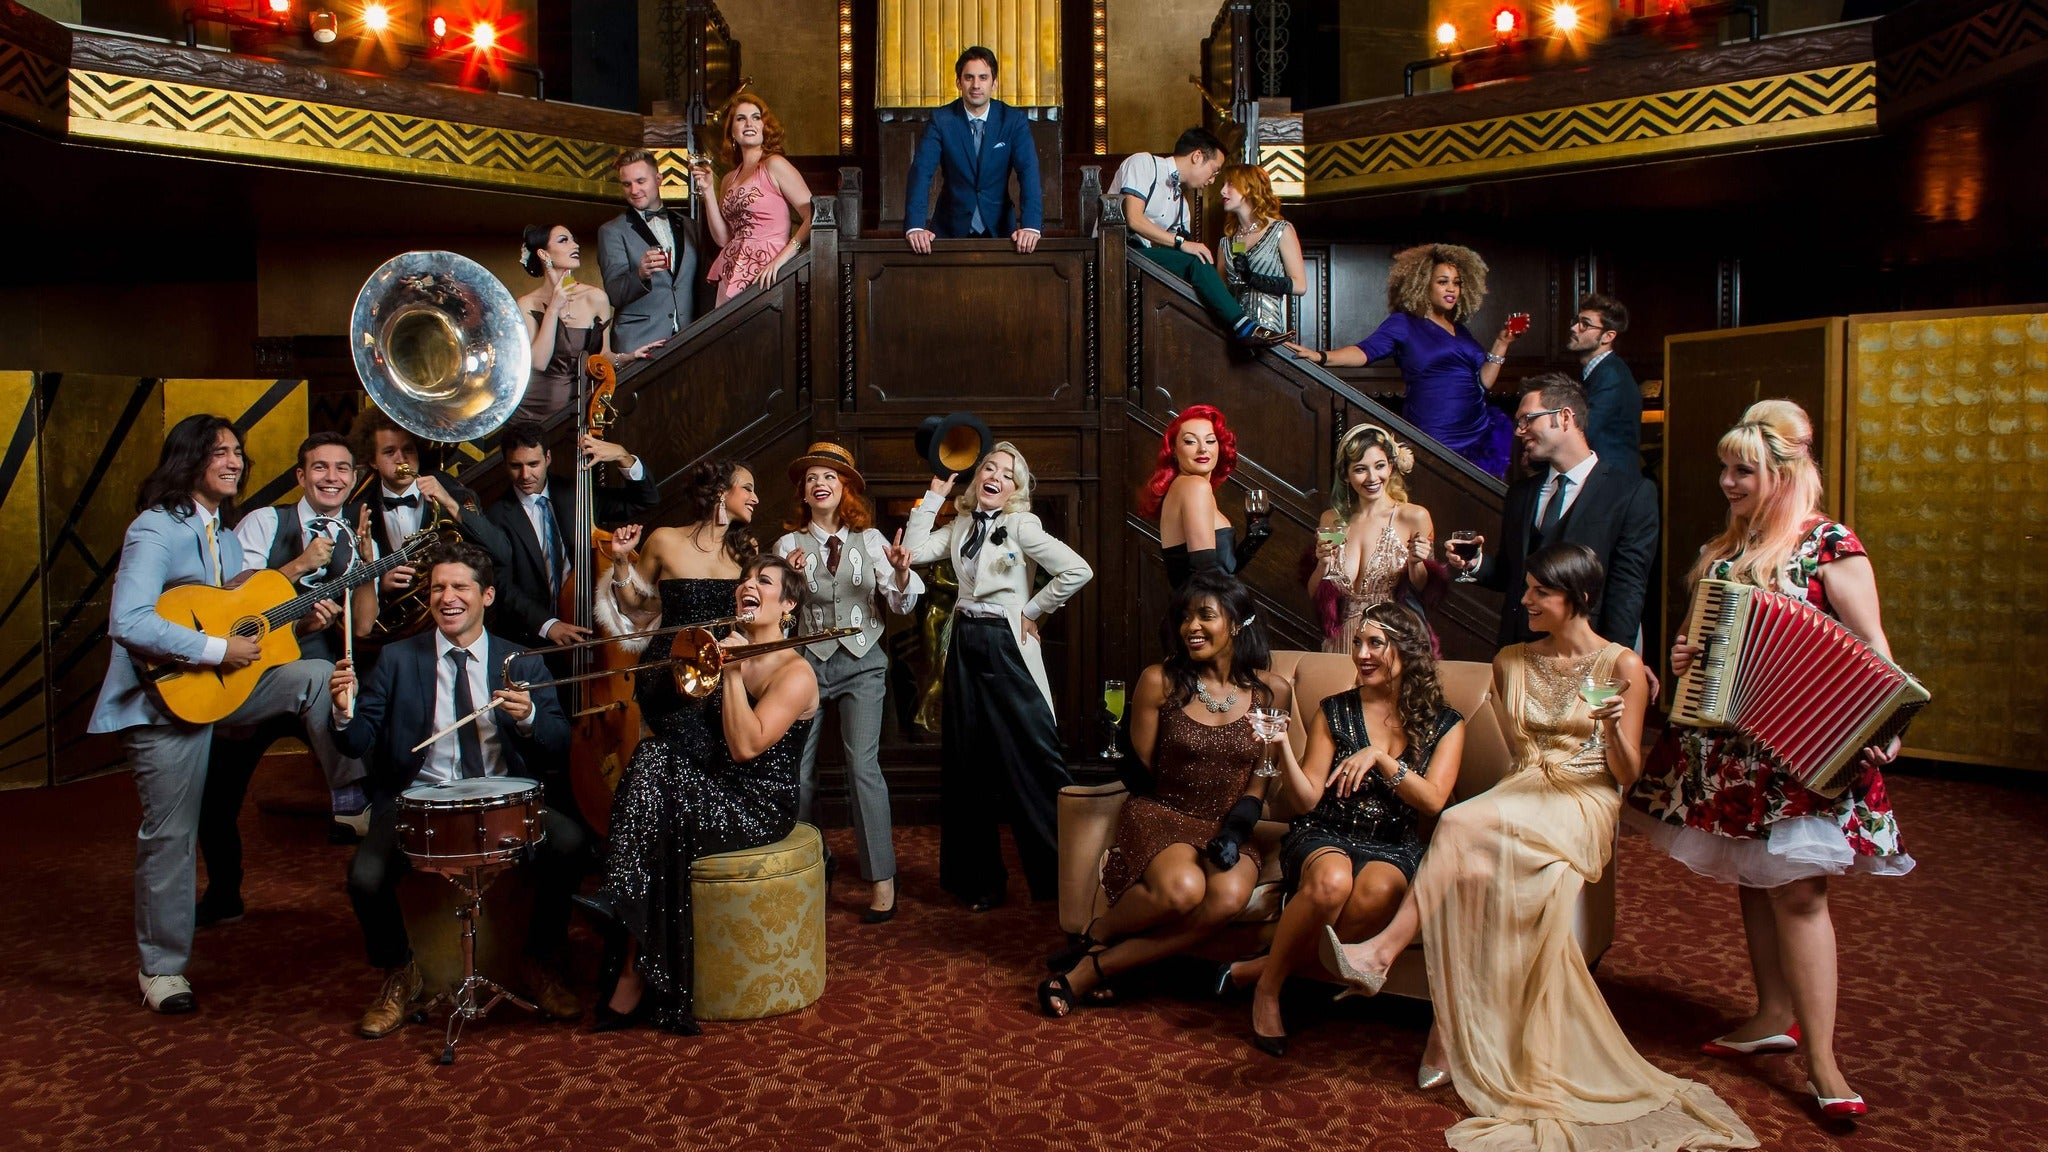 Scott Bradlee's Postmodern Jukebox at McCallum Theatre